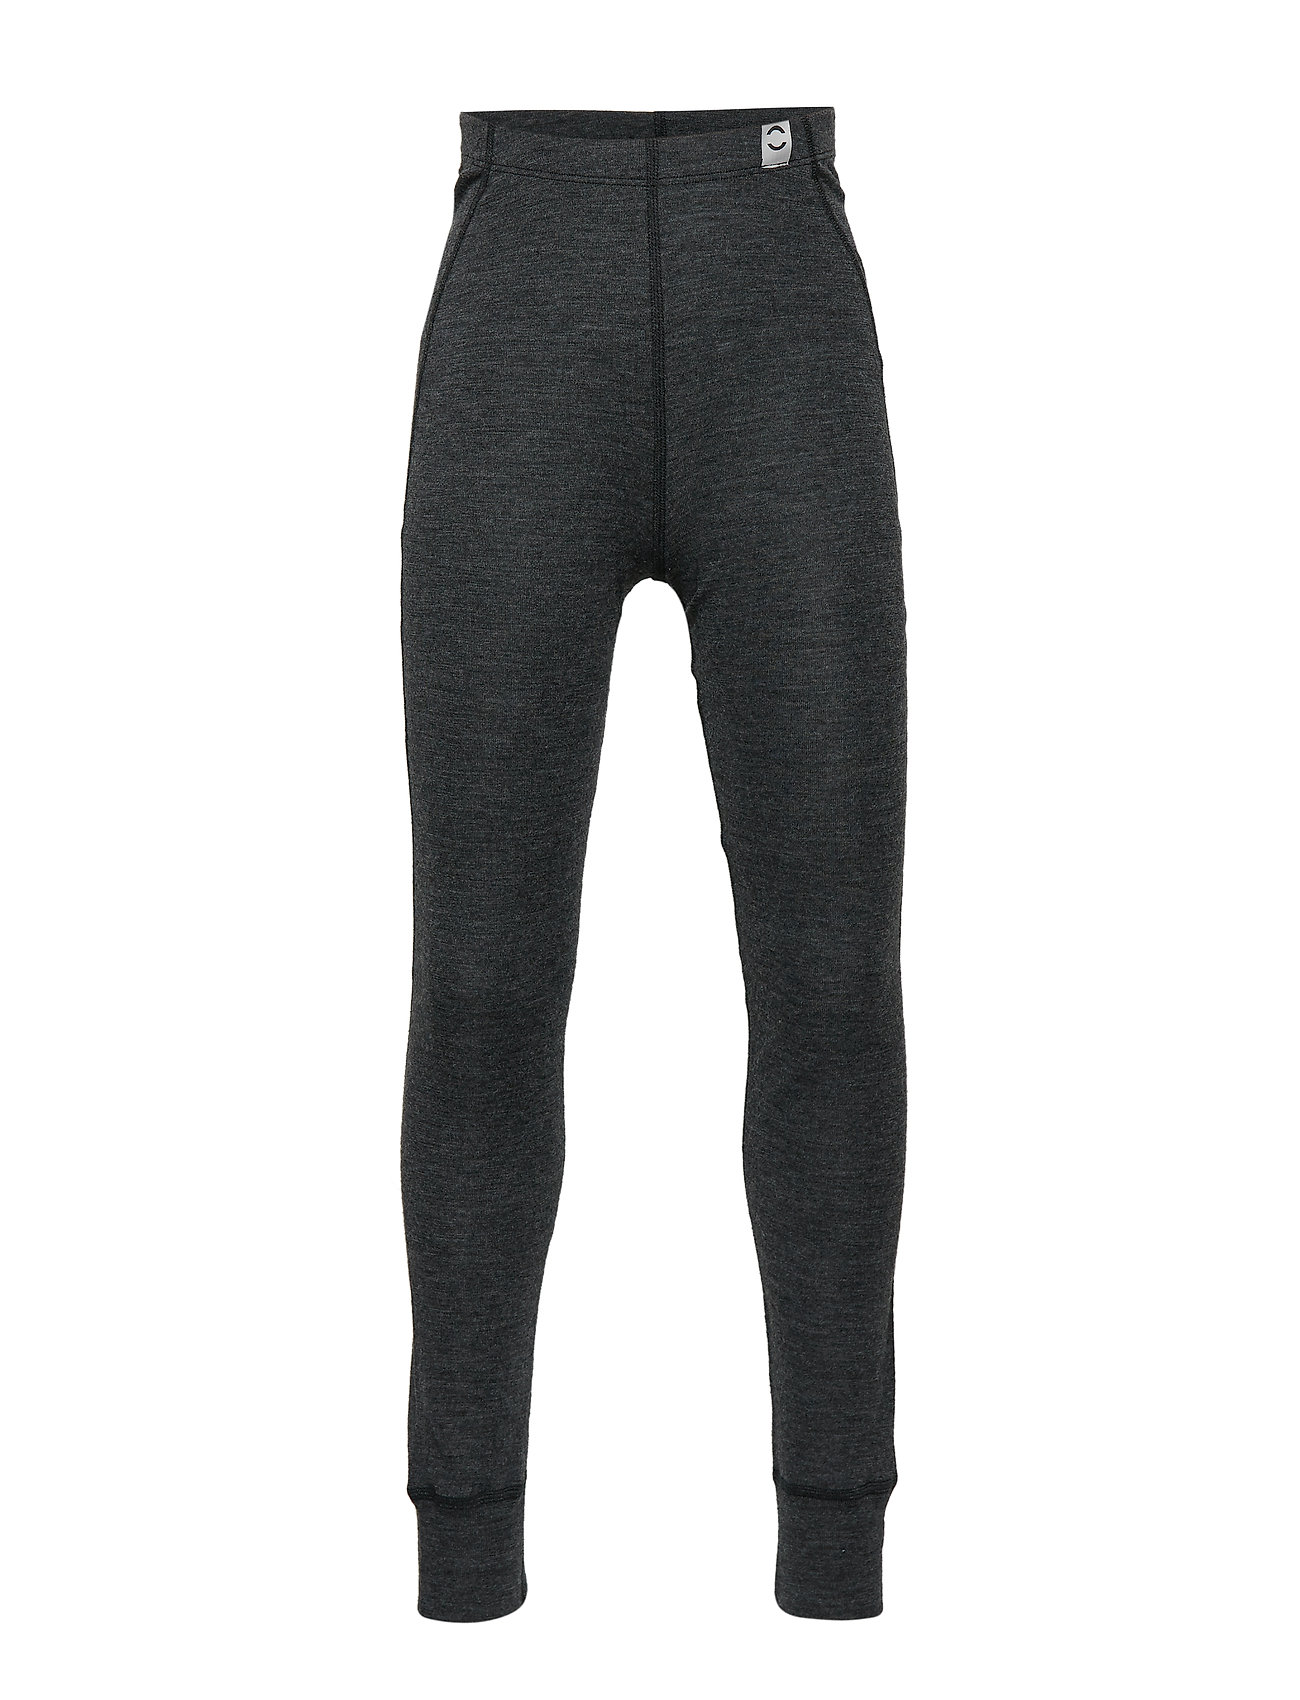 Image of Wool Pants Leggings Grå Mikk-Line (3067539511)